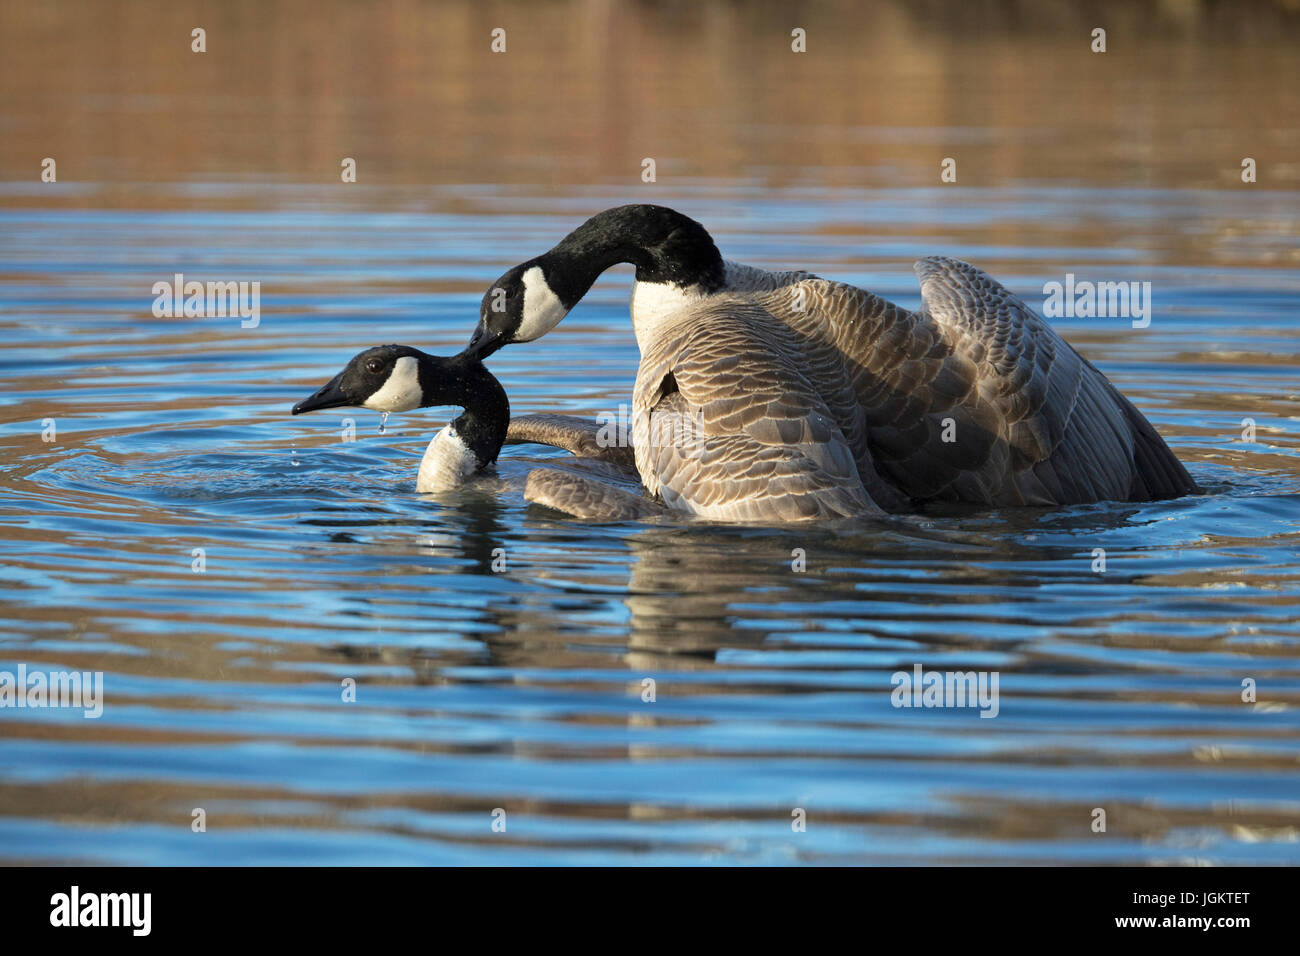 Canada Geese mating in pond (Branta canadensis) - Stock Image